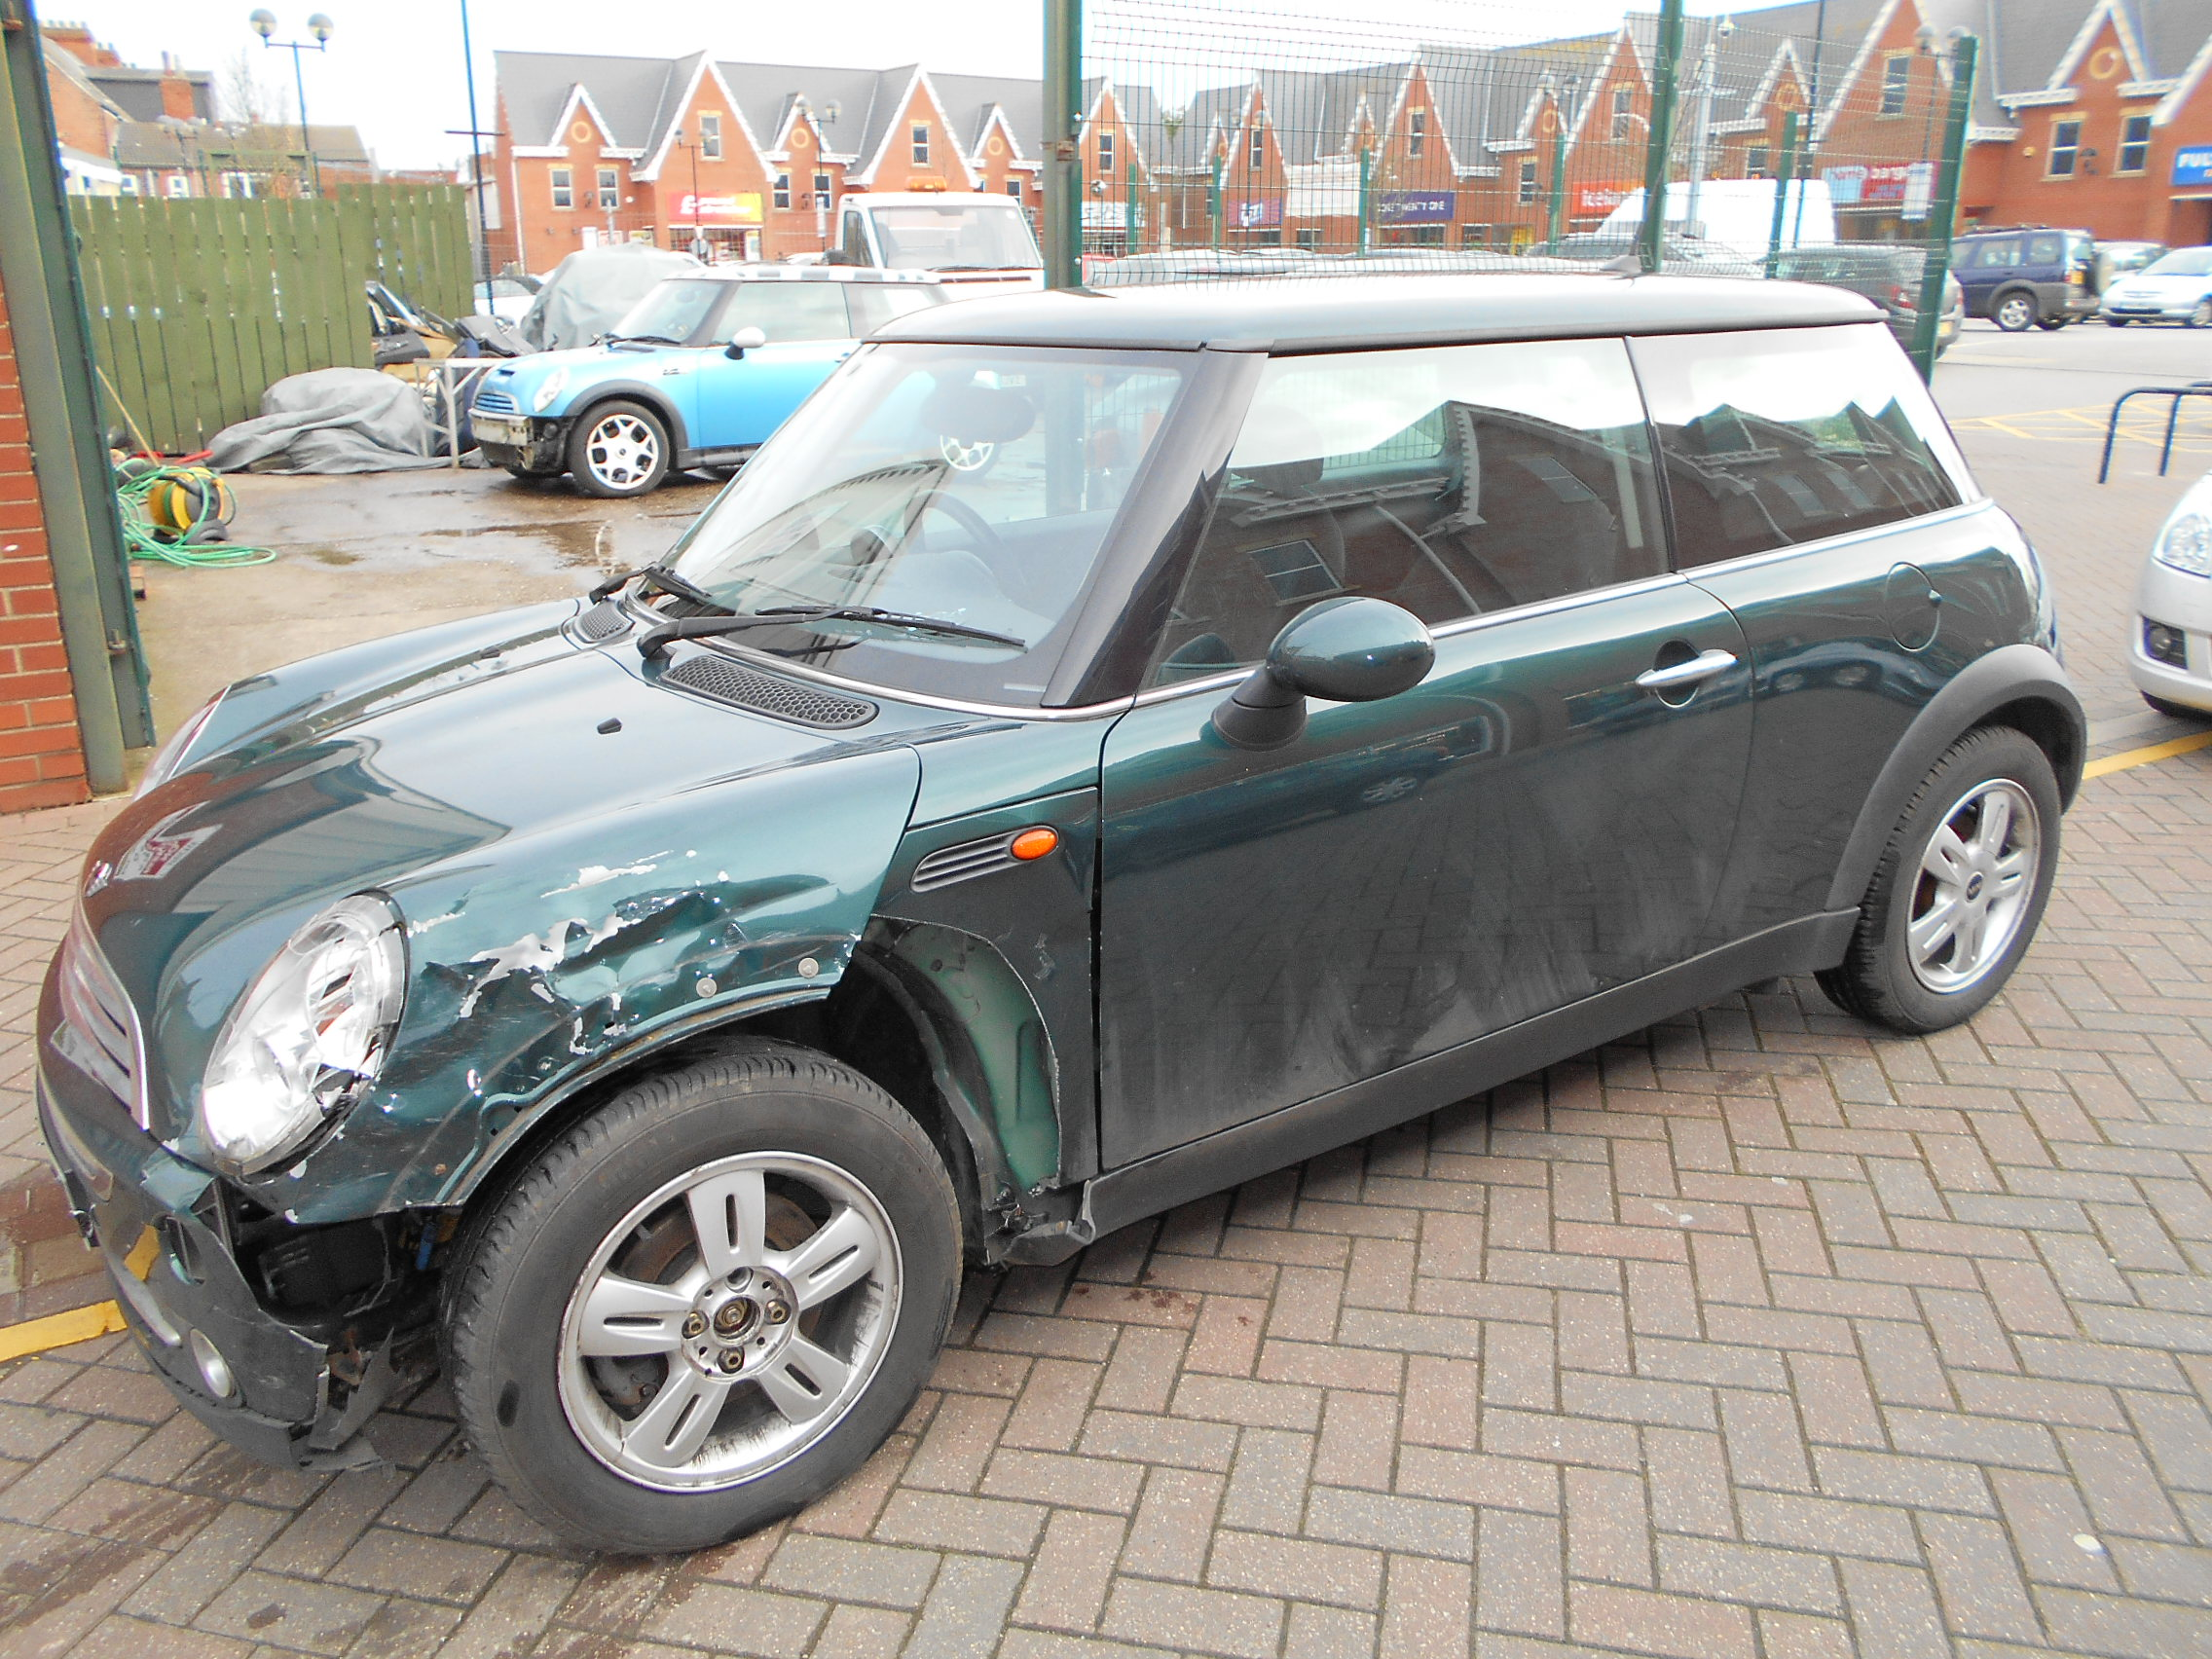 06 Green 1.6 BMW Mini One - 3